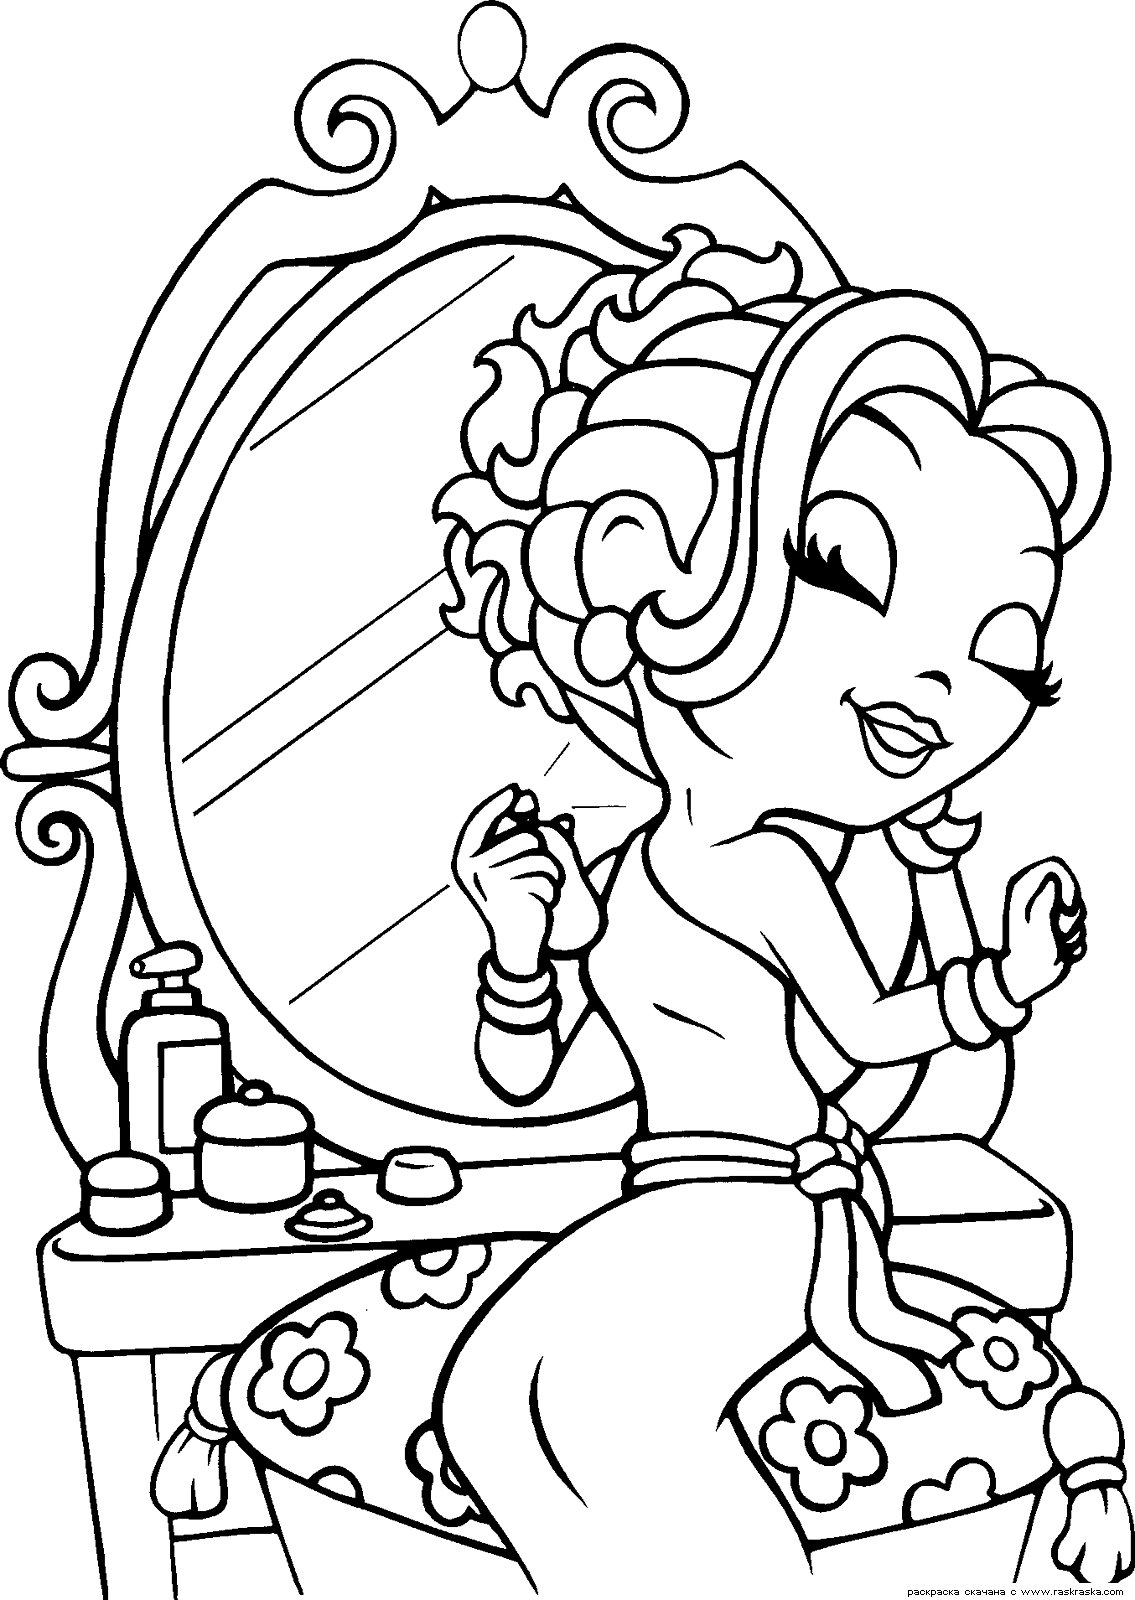 1135x1600 Free Lisa Frank Coloring Pages, Lisa Frank Girl Coloring Pages